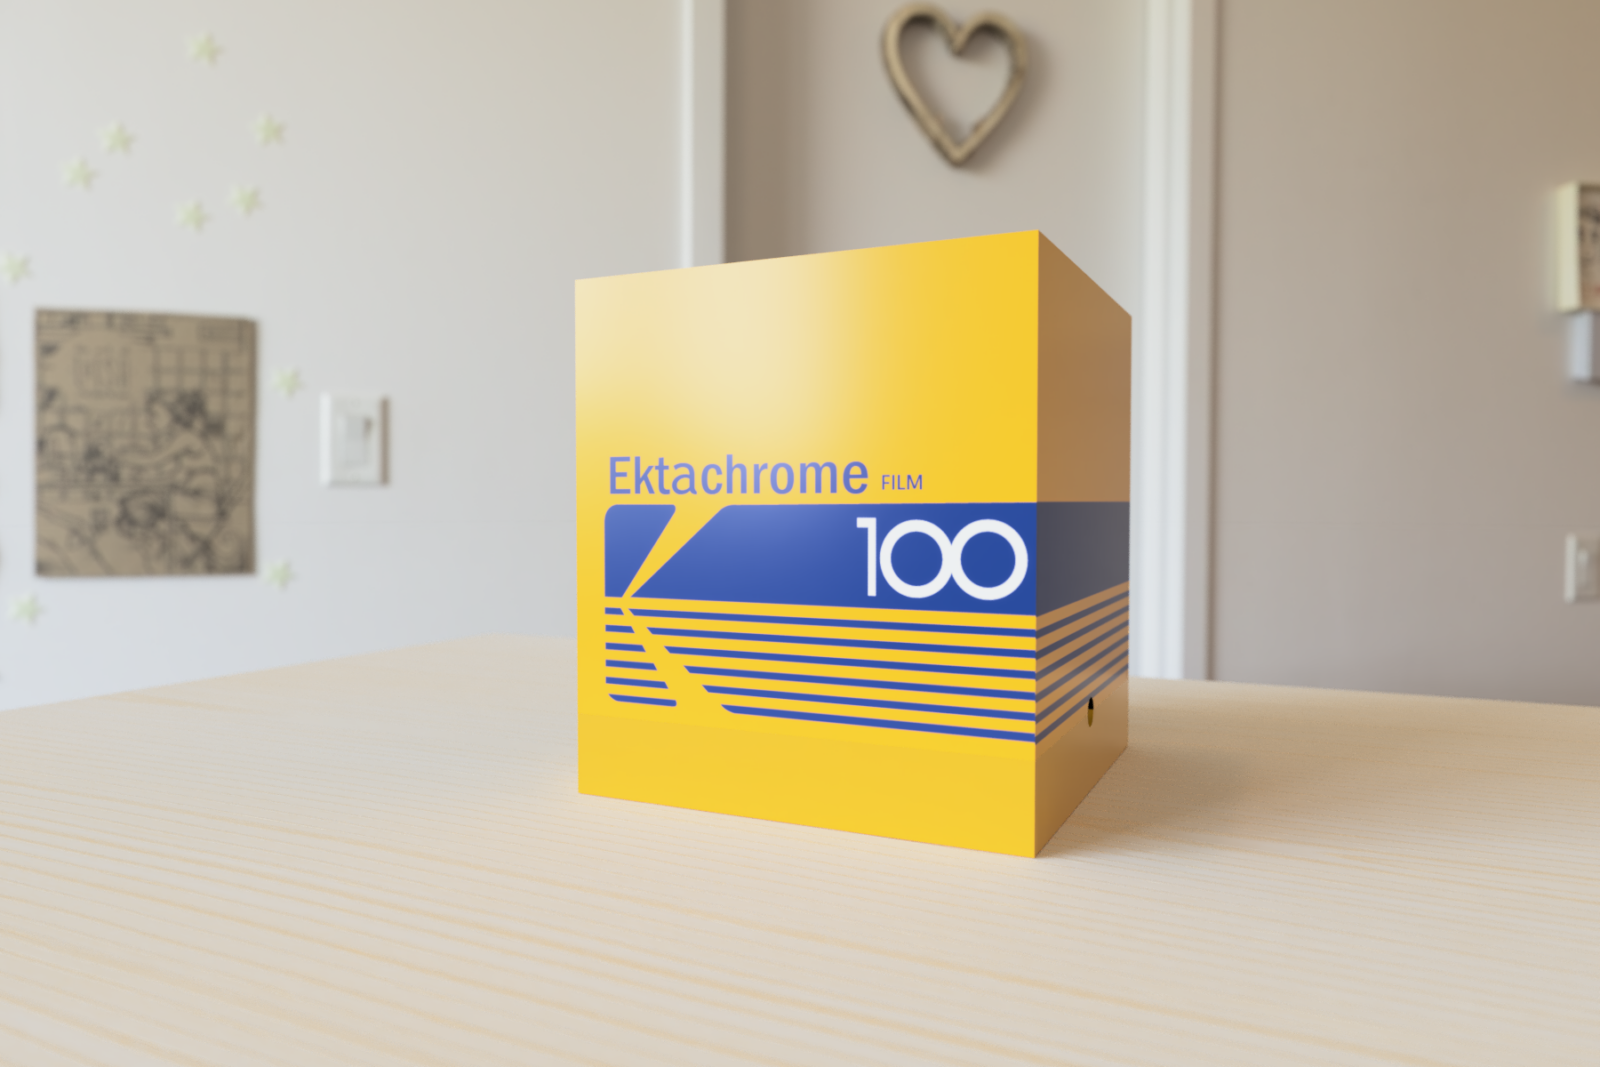 A retro themed box that holds all the equipment needed for film developing and scanning.